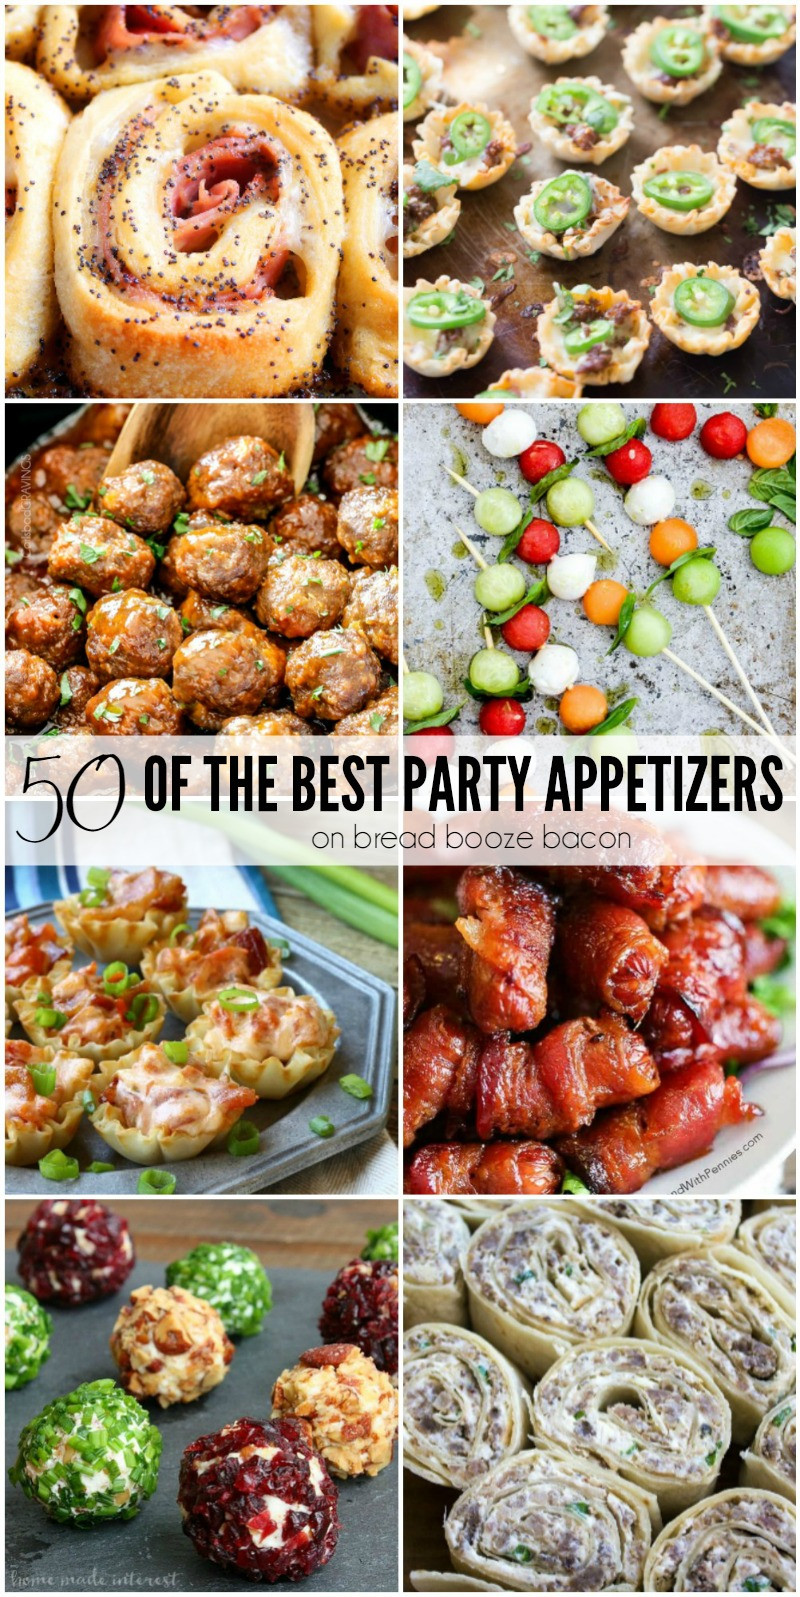 Best Christmas Party Appetizers  50 of the Best Party Appetizers • Bread Booze Bacon